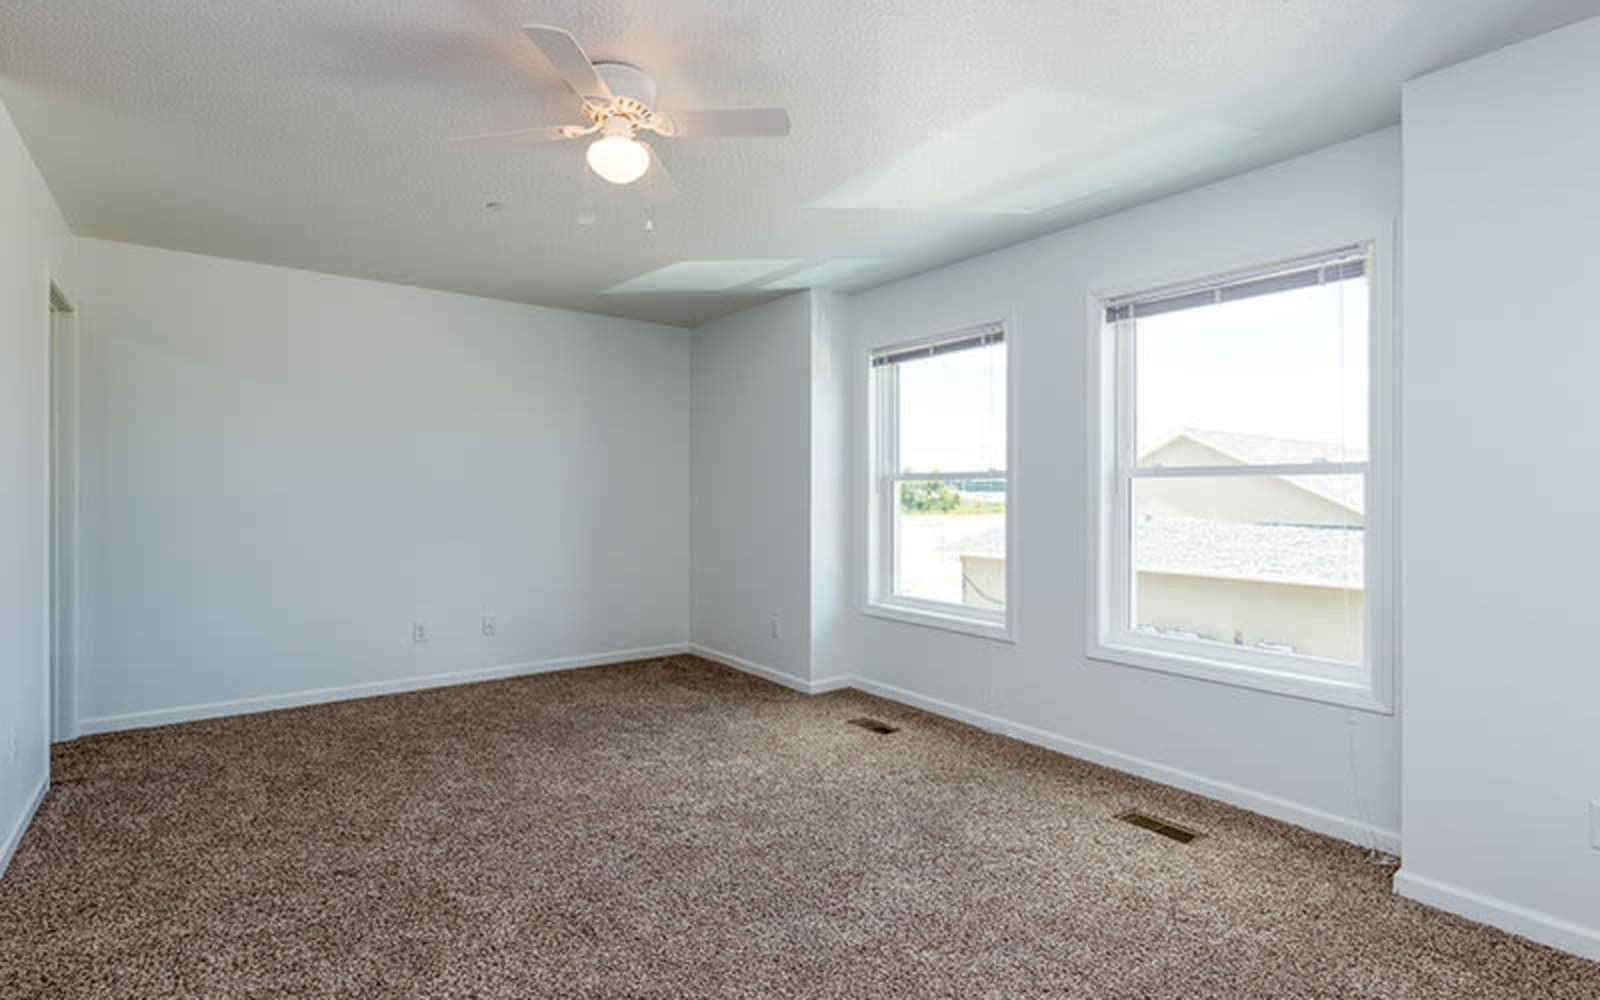 A spacious empty bedroom at The Landing of Clinton in Clinton, Iowa